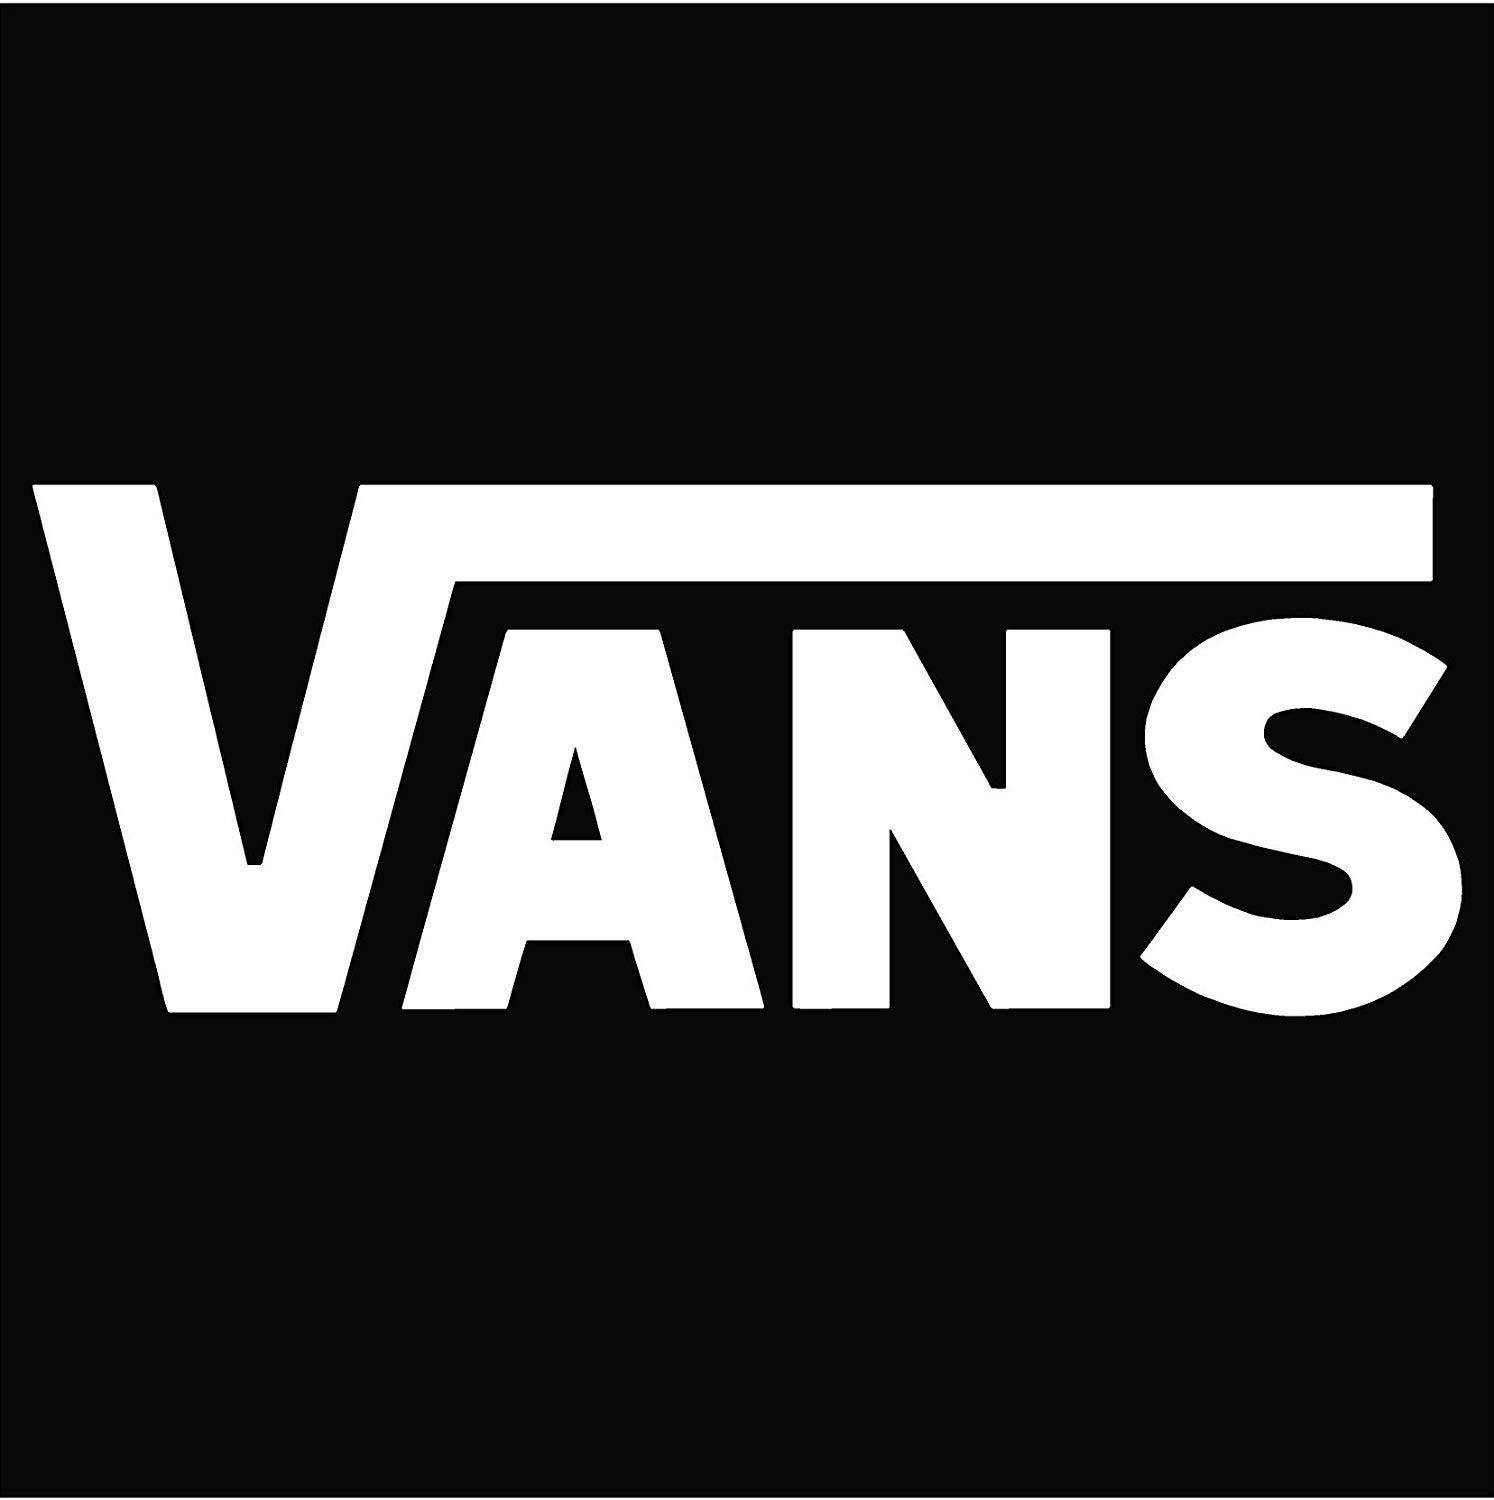 The V In The Vans Logo Looks Like The Square Root Sign Vans Logo